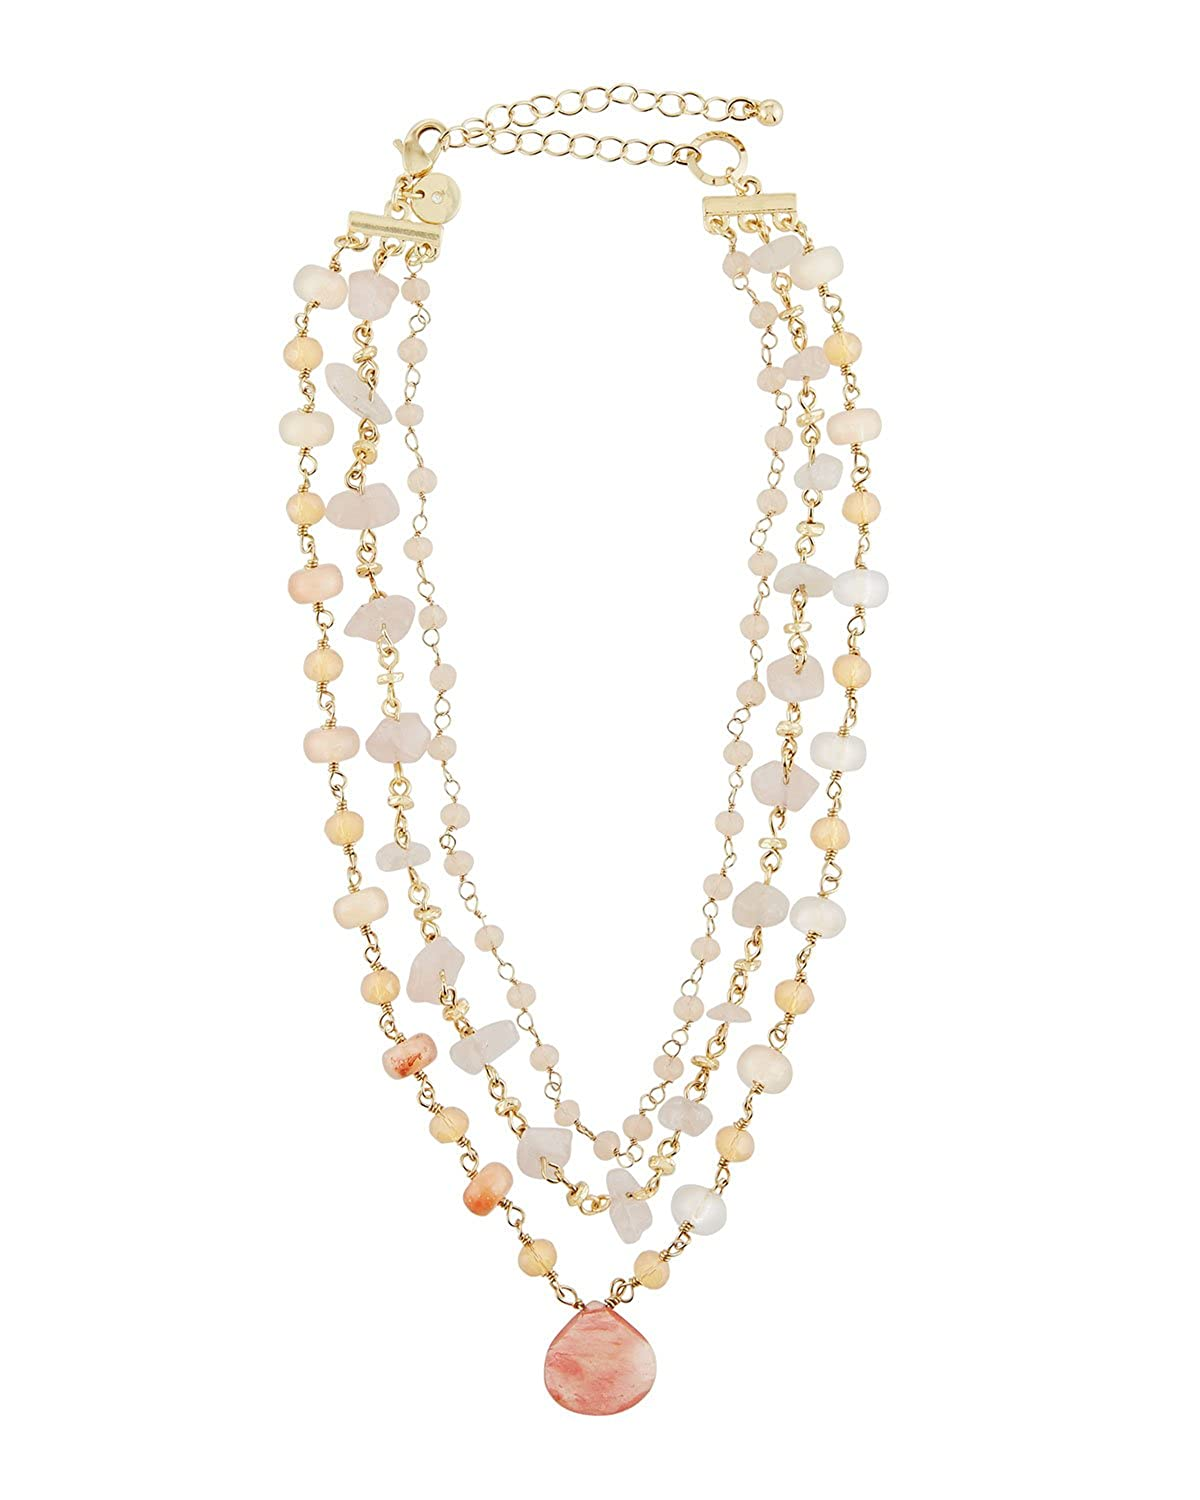 Lydell NYC Delicate Triple-Row Beaded Choker Necklace